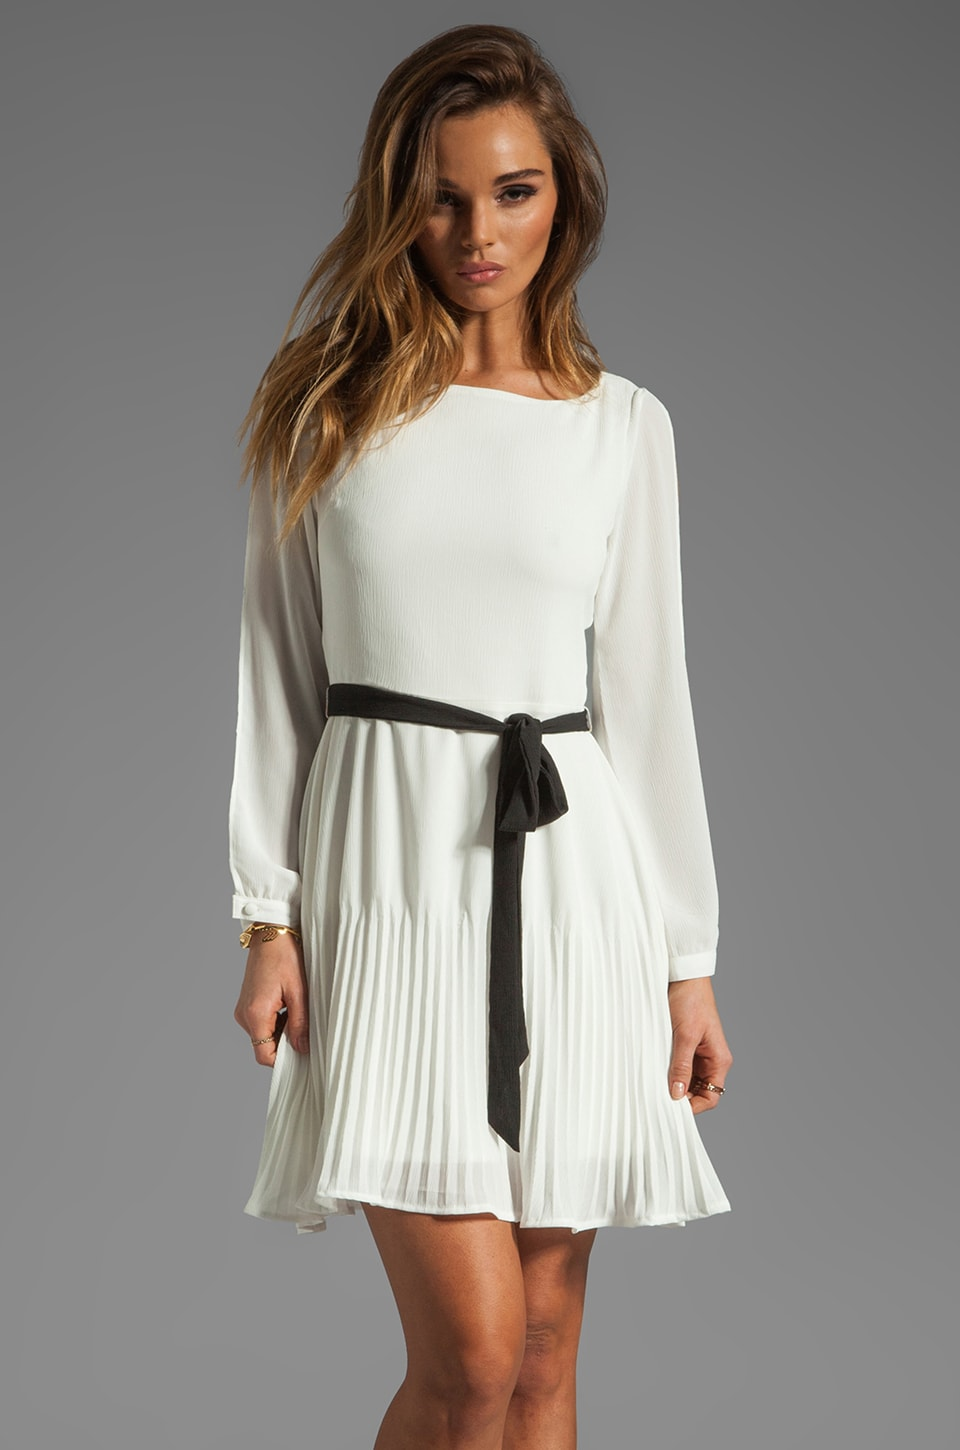 BB Dakota Fareeda Split Sleeve High Crinkle Chiffon Dress in Dirty White/Black